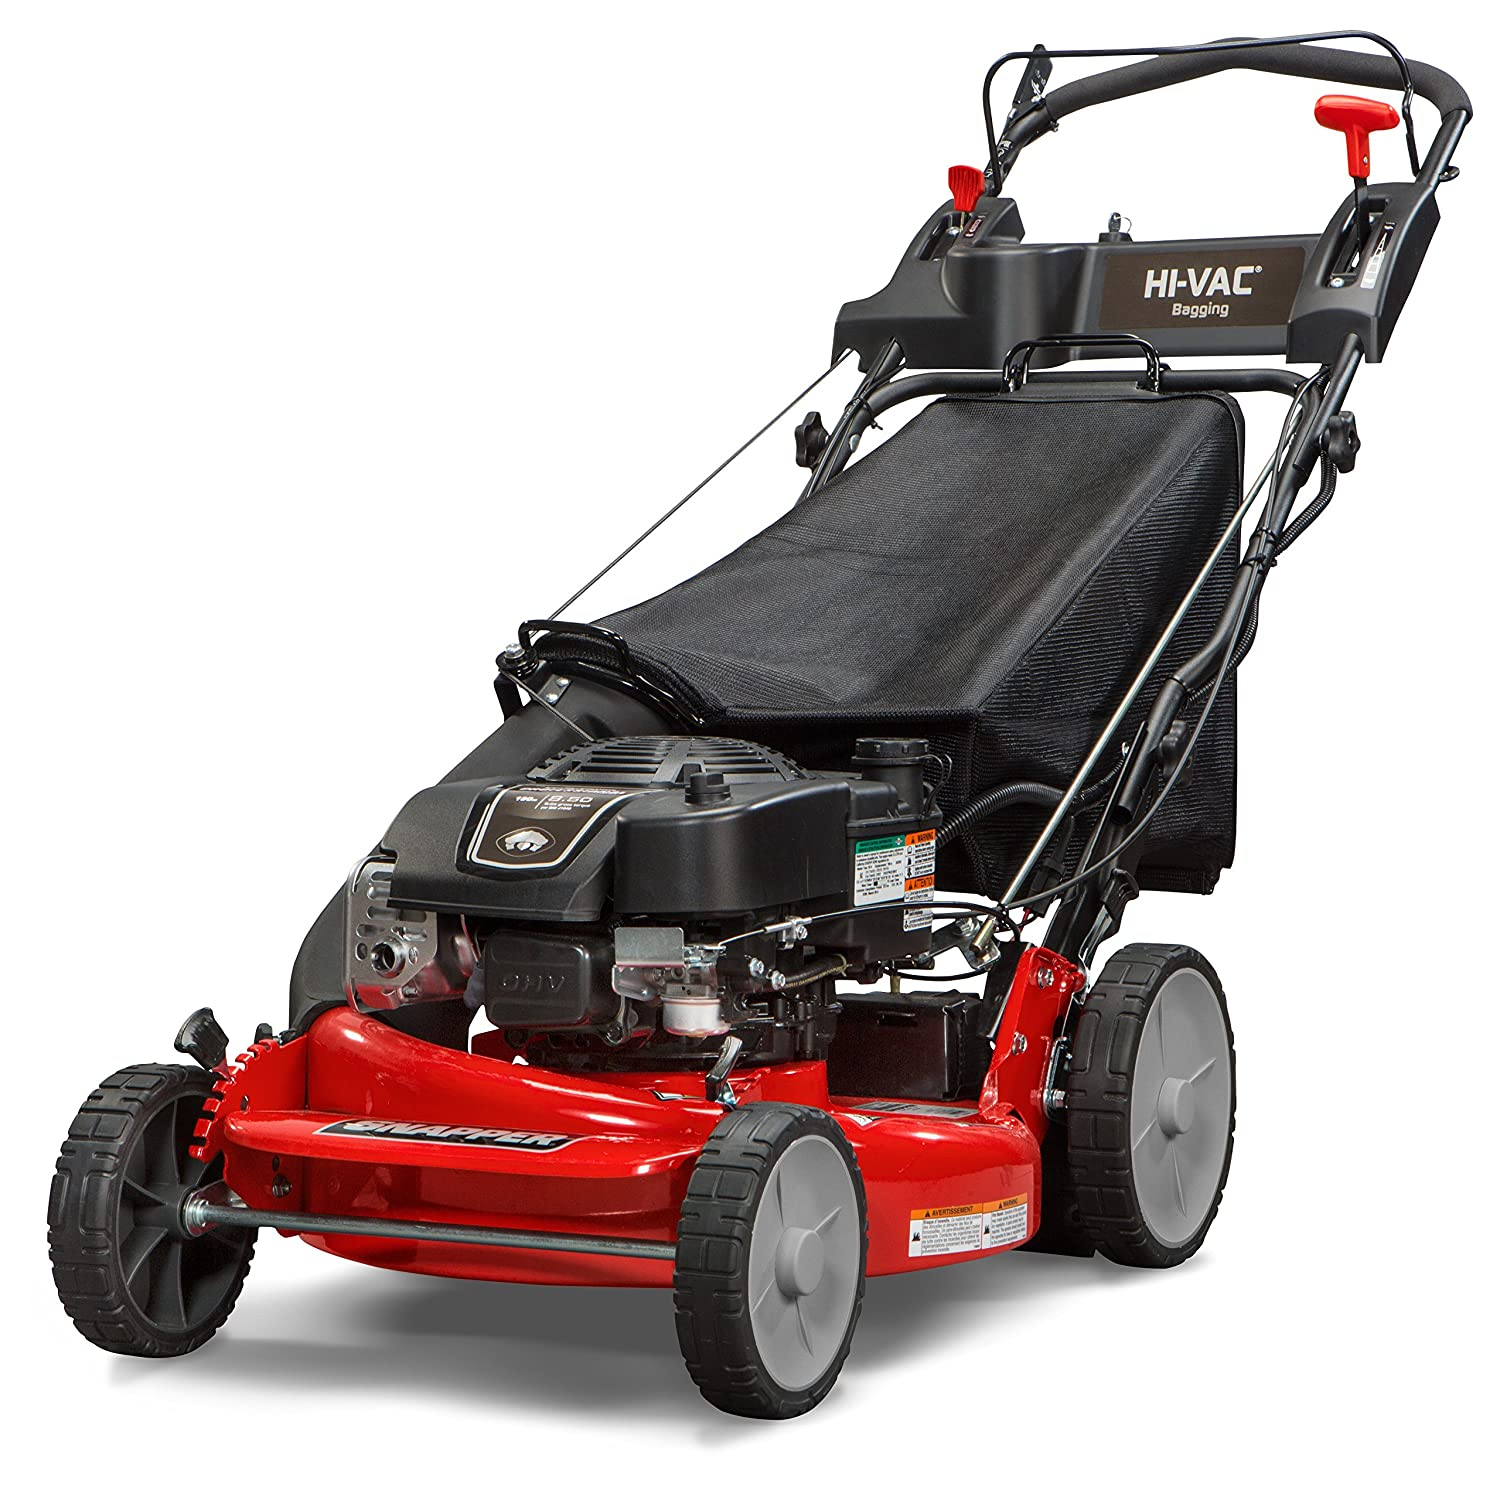 Snapper P2185020E / 7800982 HI VAC 190cc 3-N-1 Rear Wheel Drive Variable Speed Self Propelled Lawn Mower